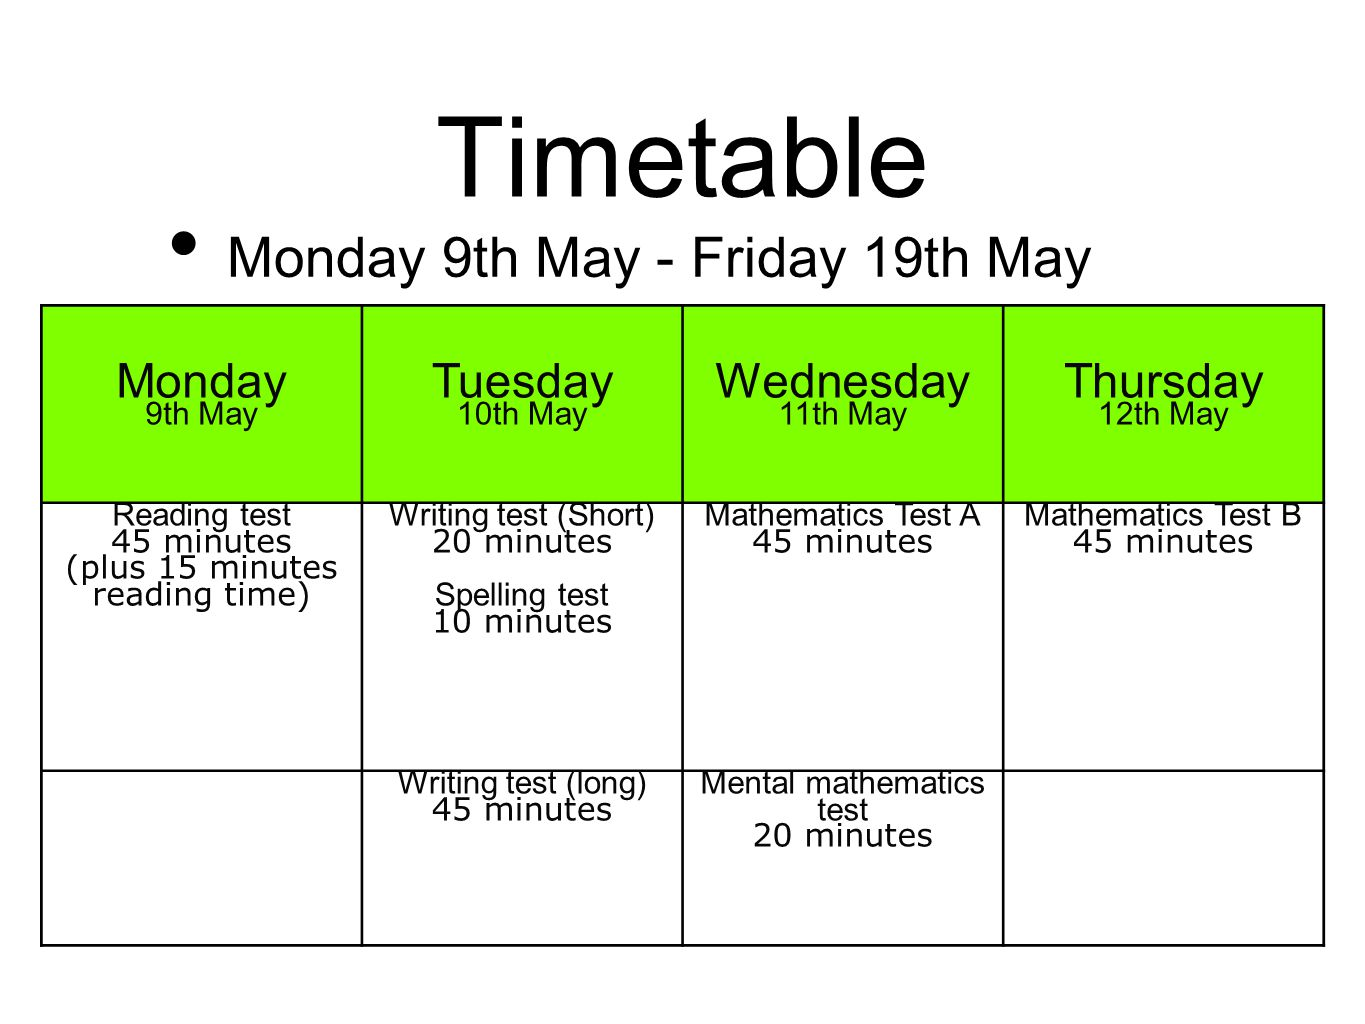 Timetable Monday 9th May - Friday 19th May 2011 Monday 9th May Tuesday 10th May Wednesday 11th May Thursday 12th May Reading test 45 minutes (plus 15 minutes reading time) Writing test (Short) 20 minutes Spelling test 10 minutes Mathematics Test A 45 minutes Mathematics Test B 45 minutes Writing test (long) 45 minutes Mental mathematics test 20 minutes